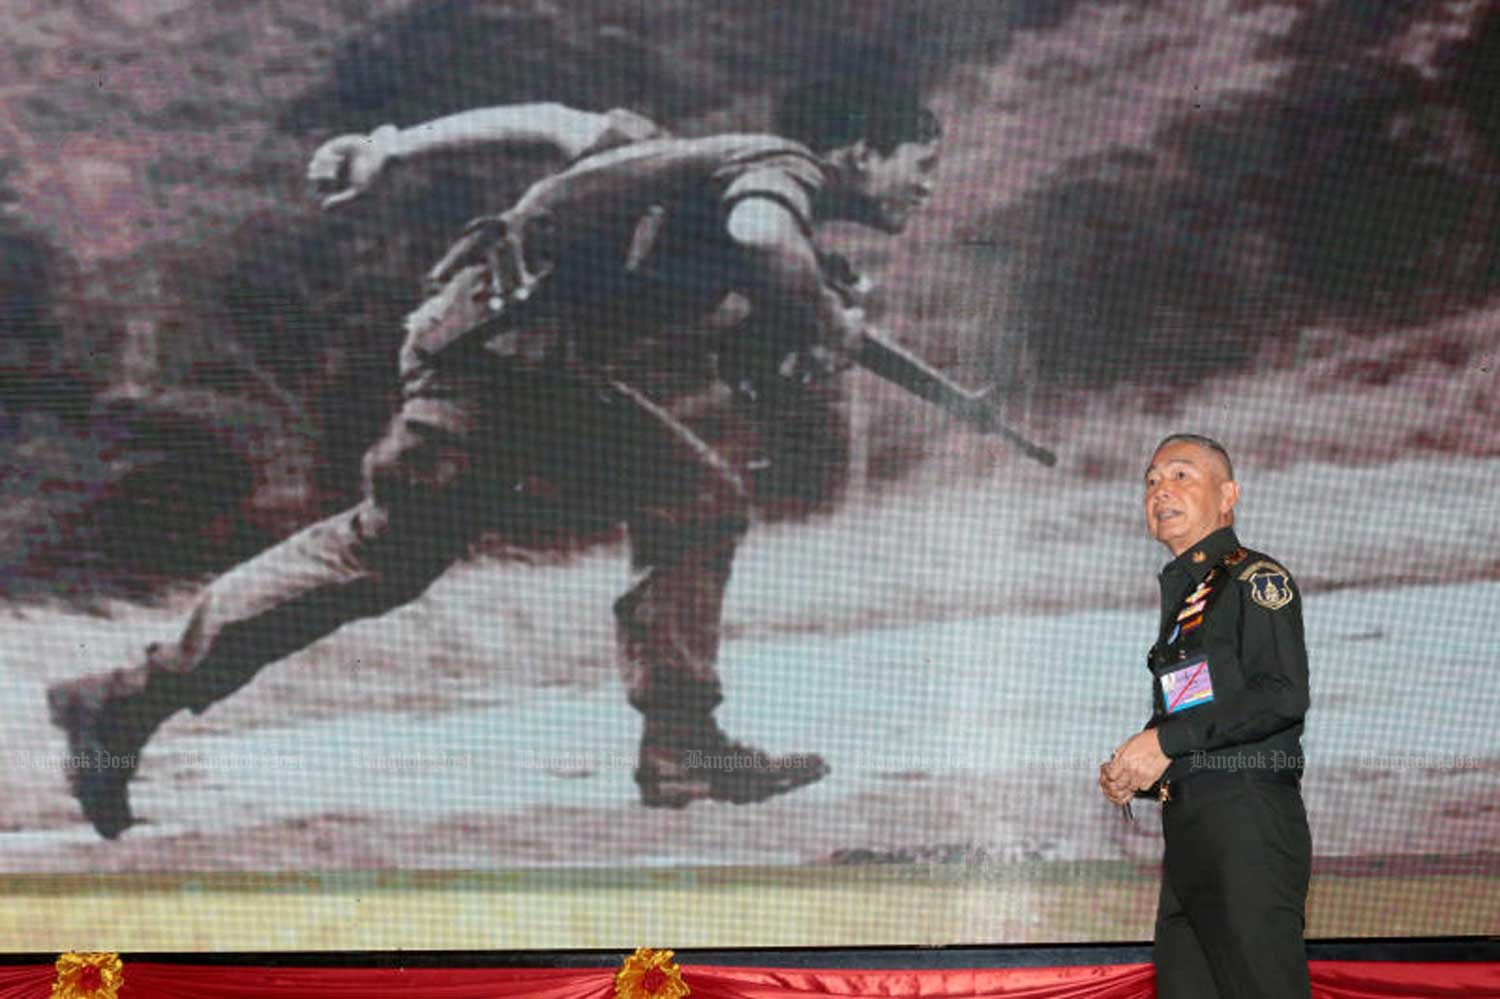 Army chief Gen Apirat Kongsompong describes how His Majesty the King fought against a communist force in Loei province in 1976, during his special lecture on national security at the Royal Thai Army headquarters in Bangkok on Friday. He is standing in front of a picture of the King when he was the Crown Prince, on the Loei battlefield. (Photo by Chanat Katanyu)